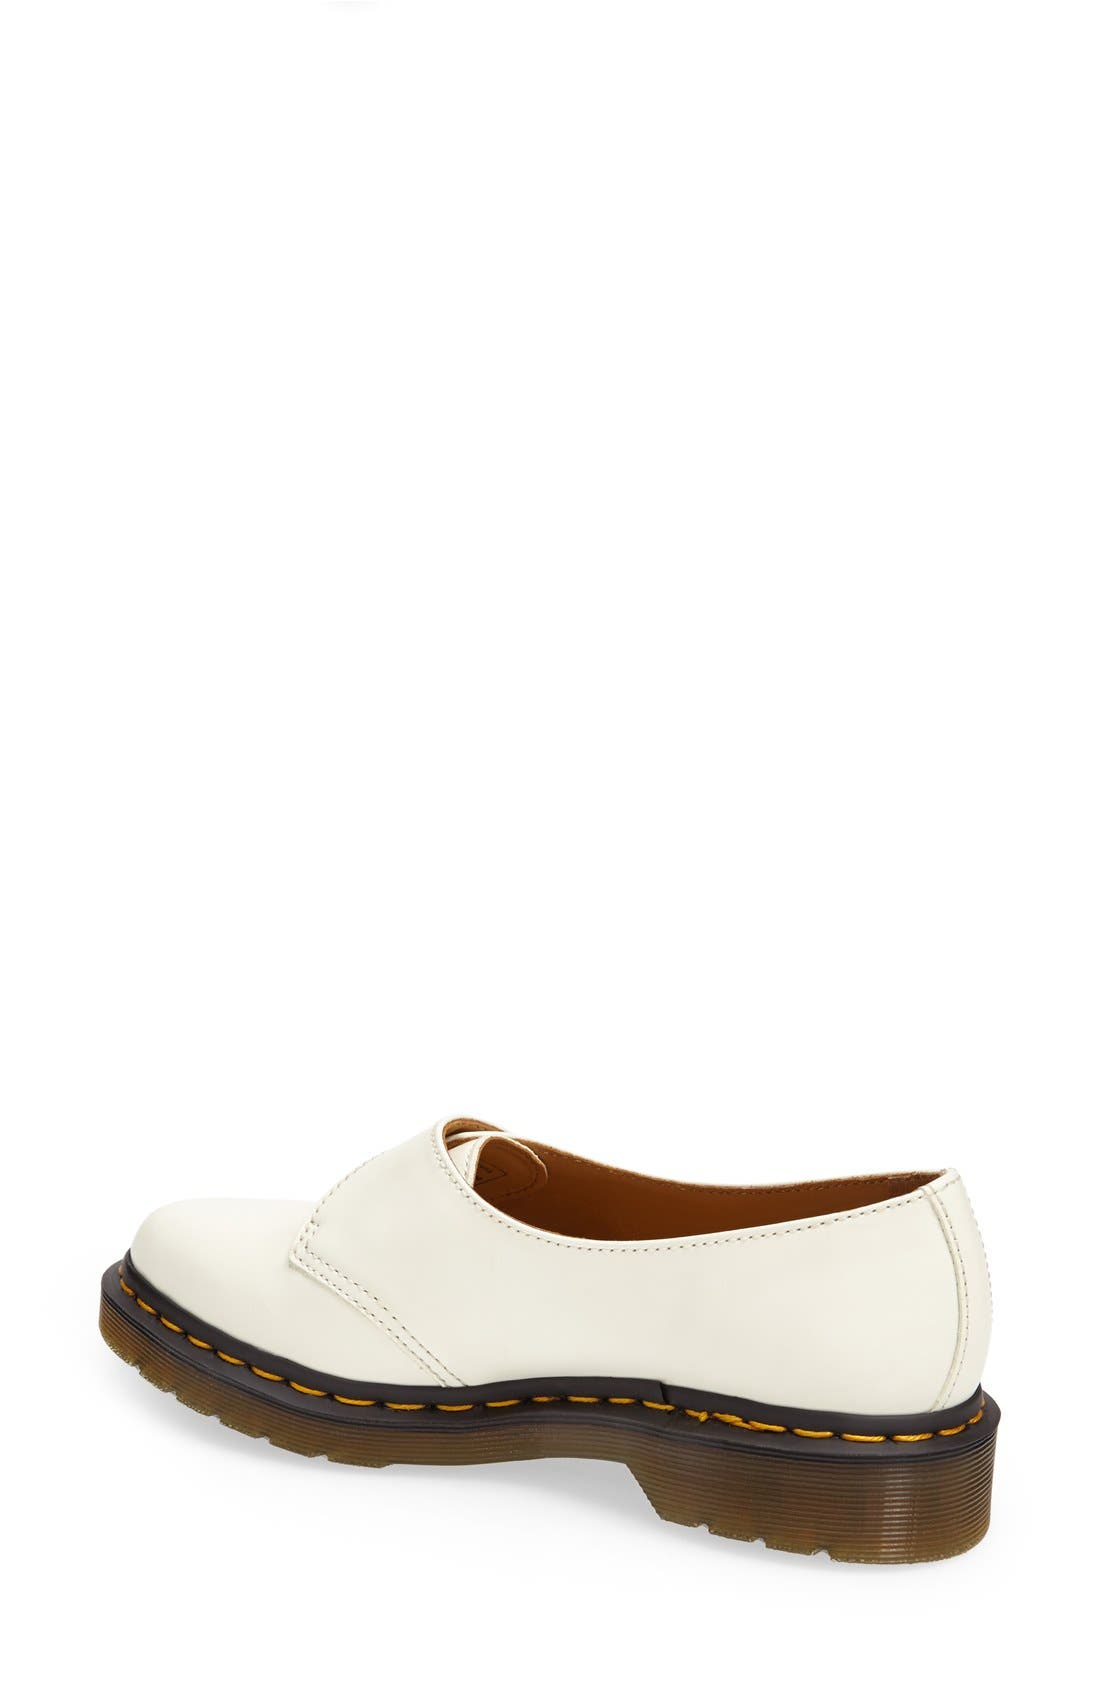 'Agnes' Monk Strap Flat,                             Alternate thumbnail 3, color,                             100